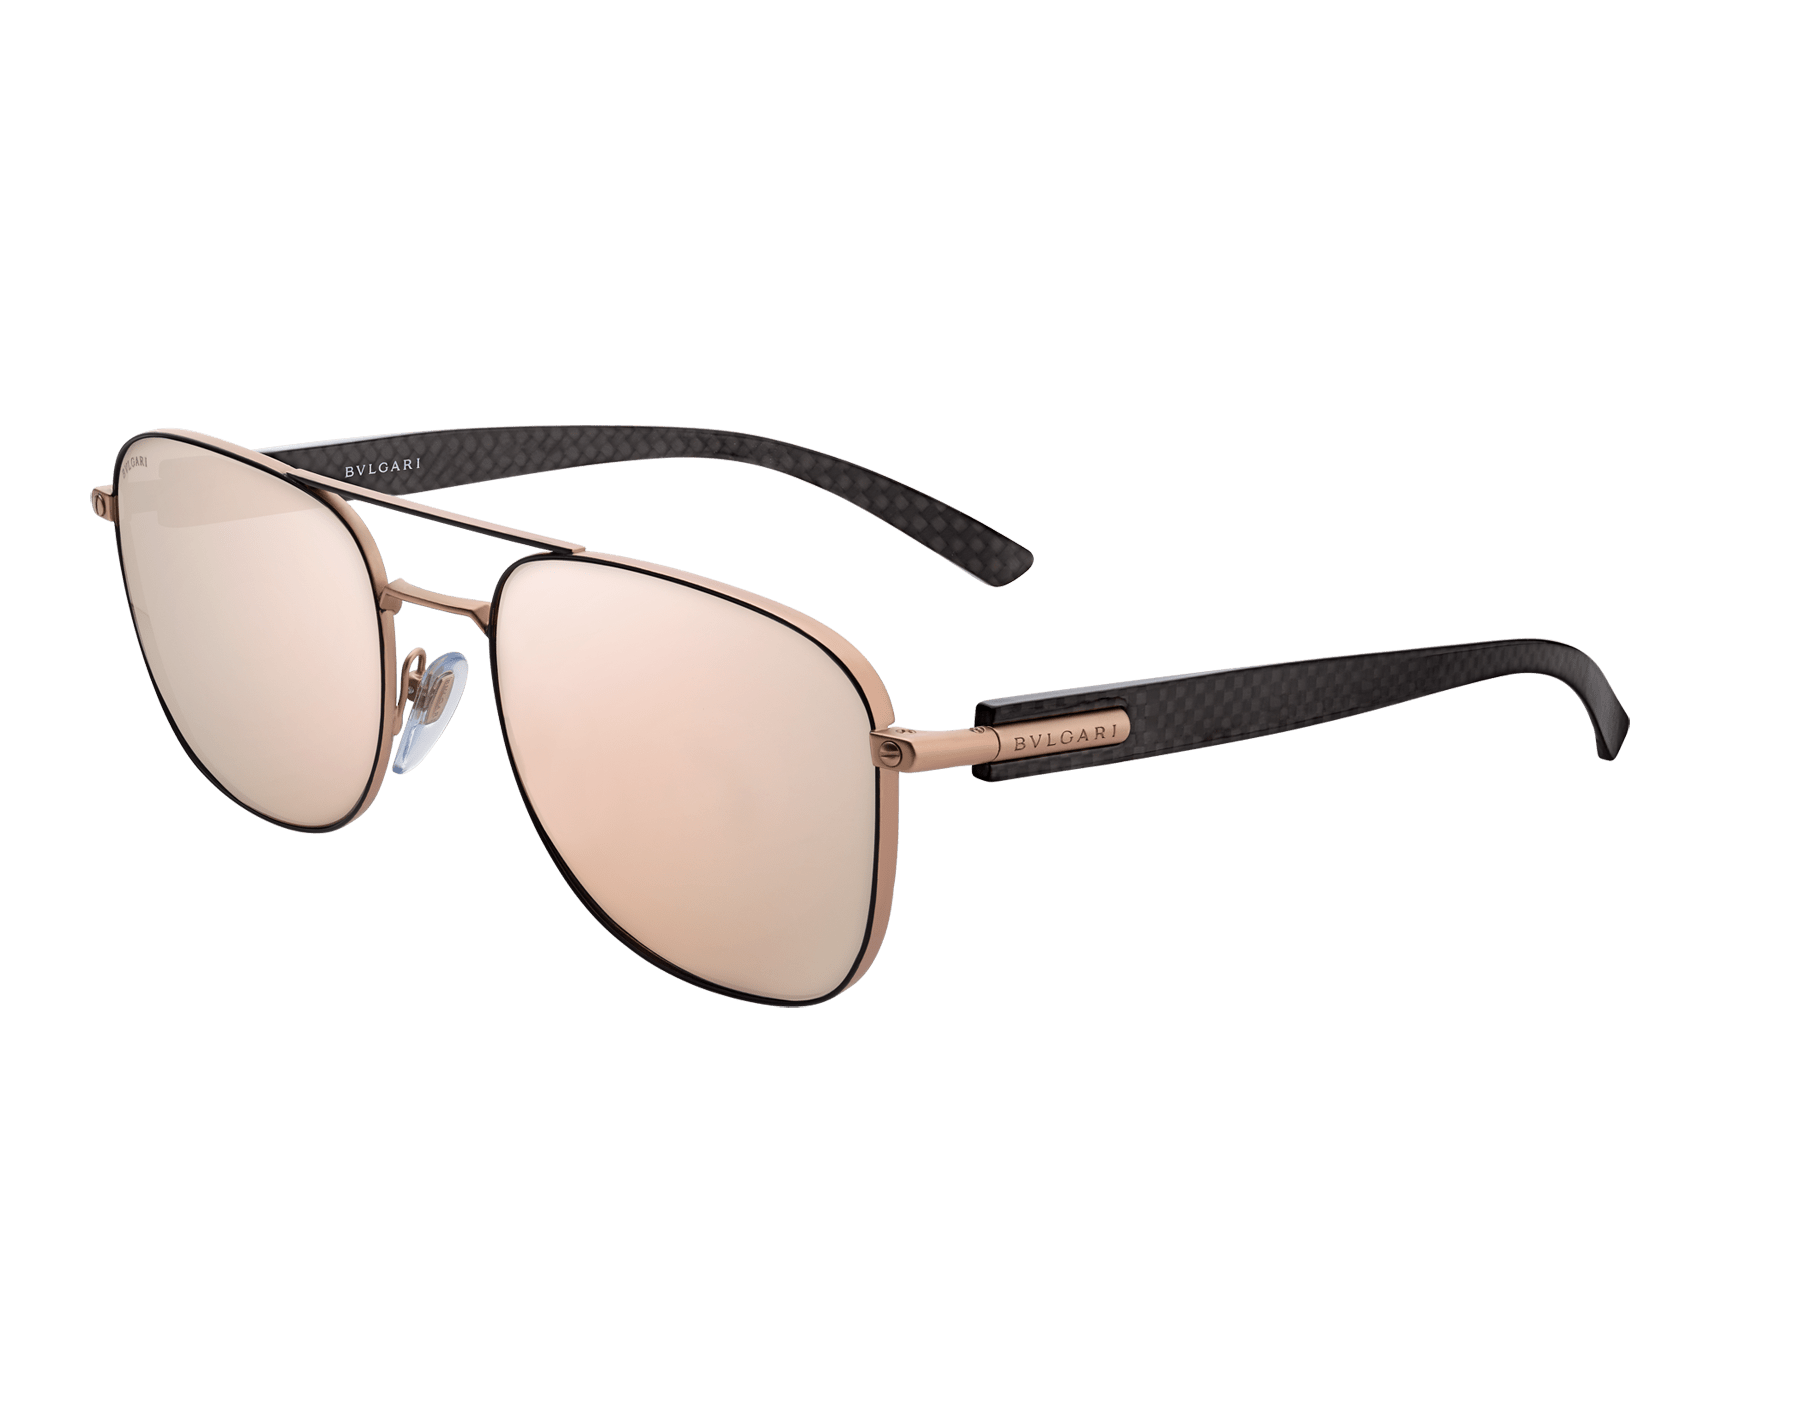 BVLGARI BVLGARI rectangular metal sunglasses with metal double bridge and carbon fibre arms. 903917 image 1